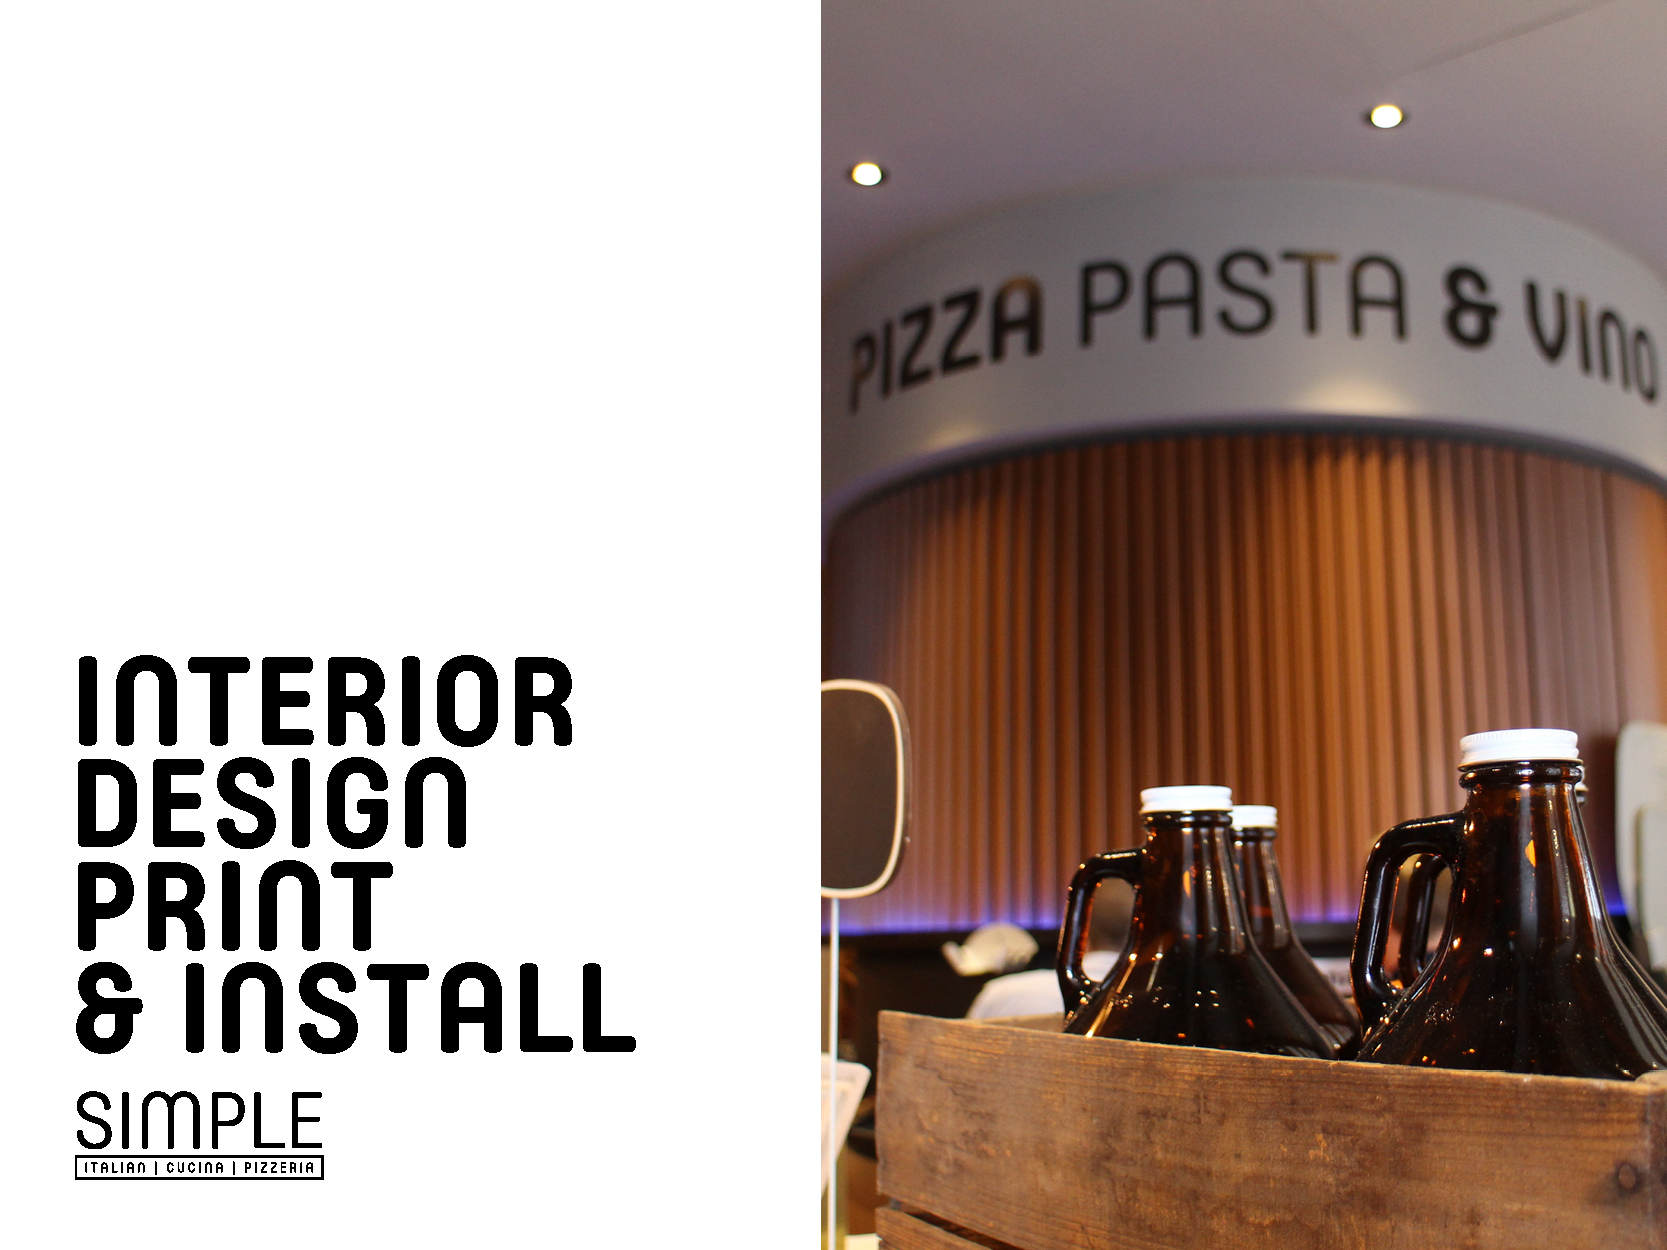 Simple Italian - Branding Design and Concepts Completed7.jpg